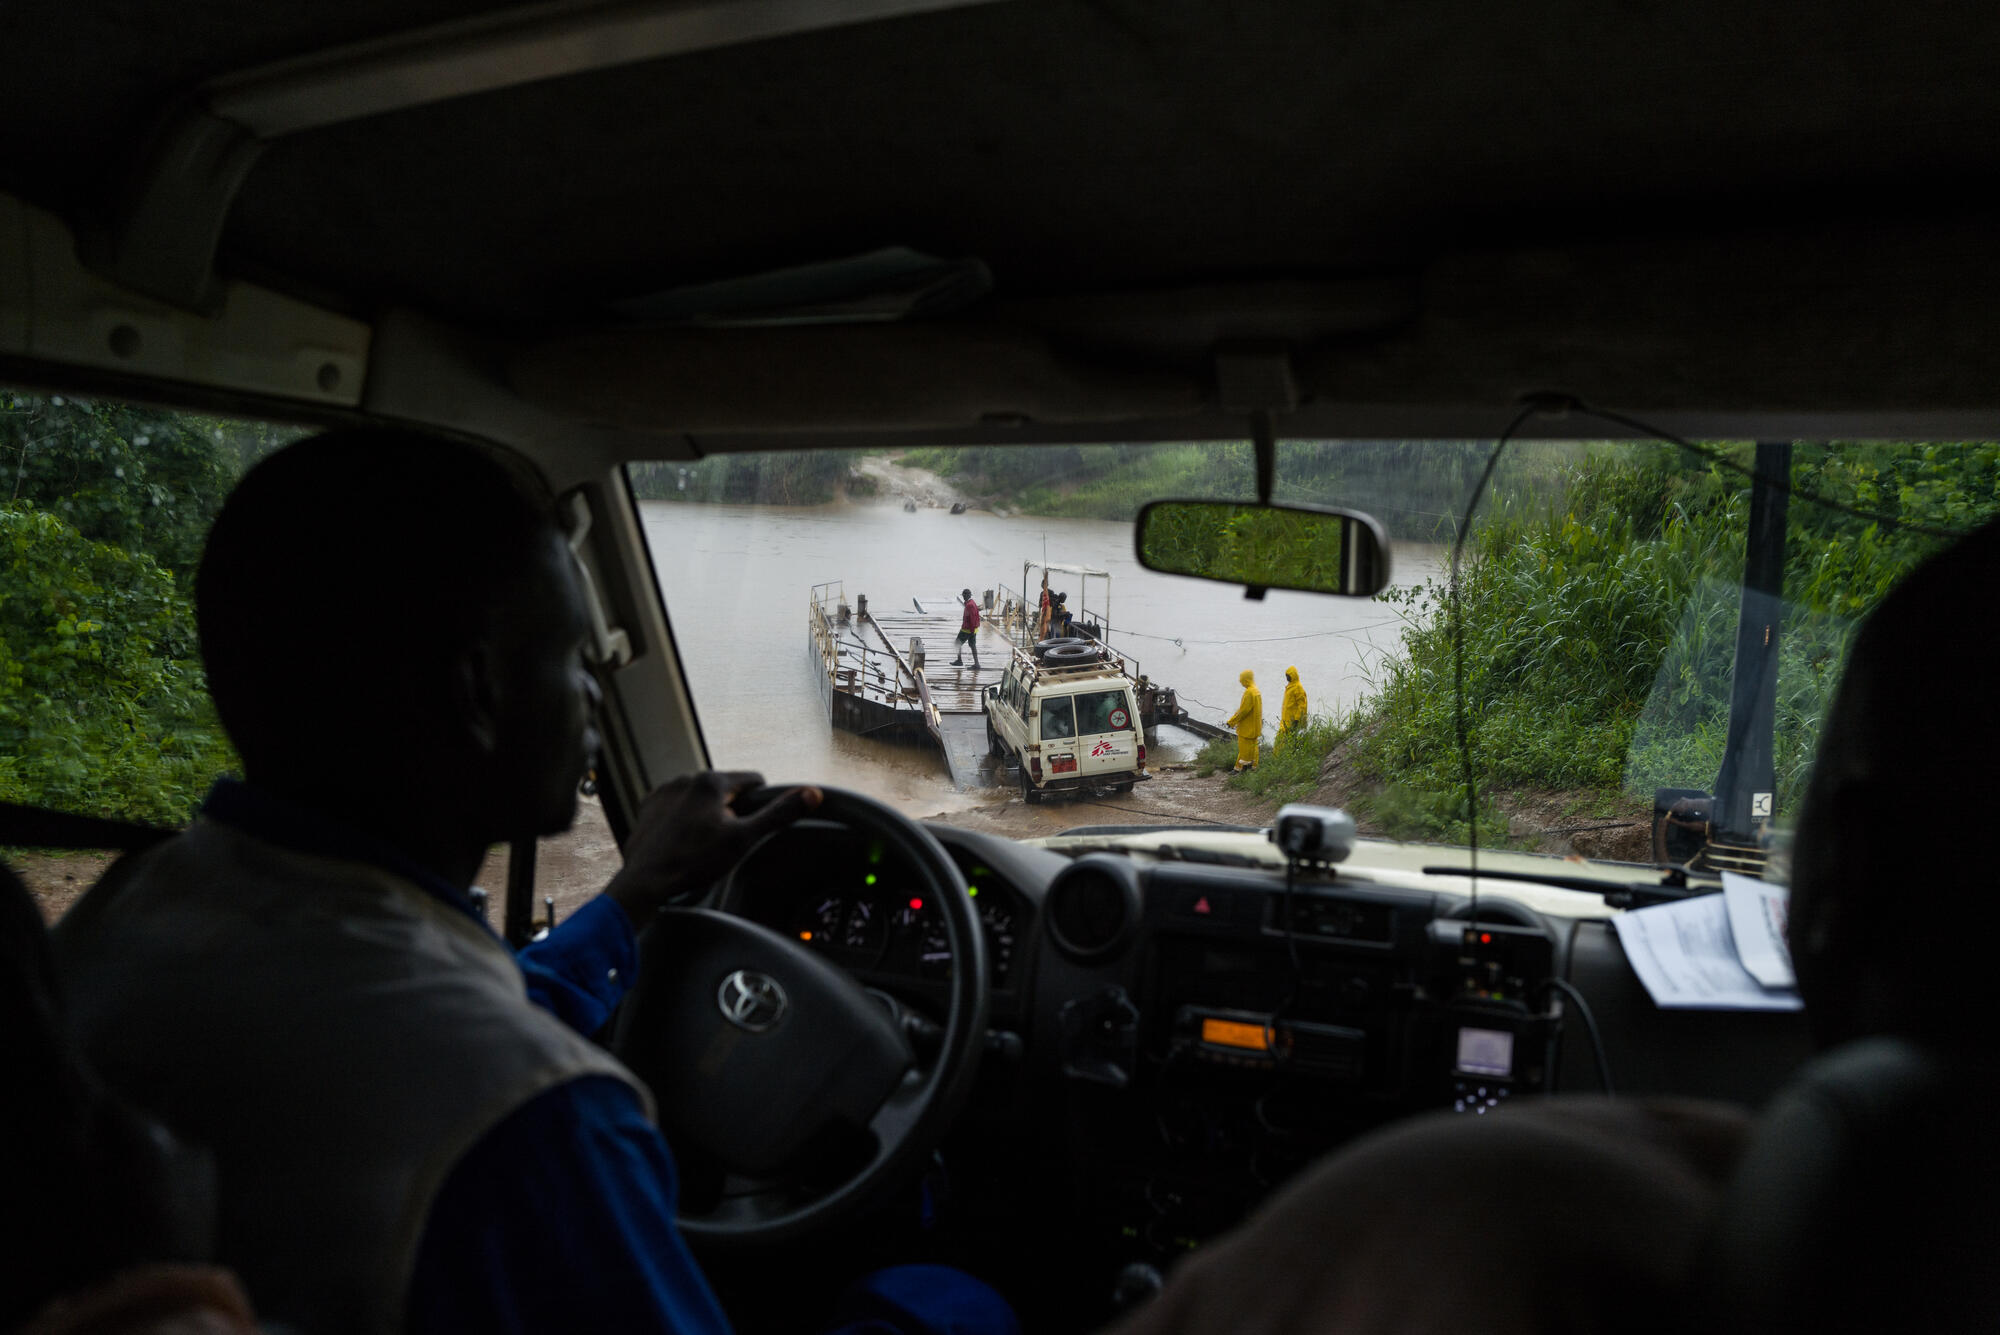 MSF vehicles ride the cable ferry to cross the river on the way to Nzacko